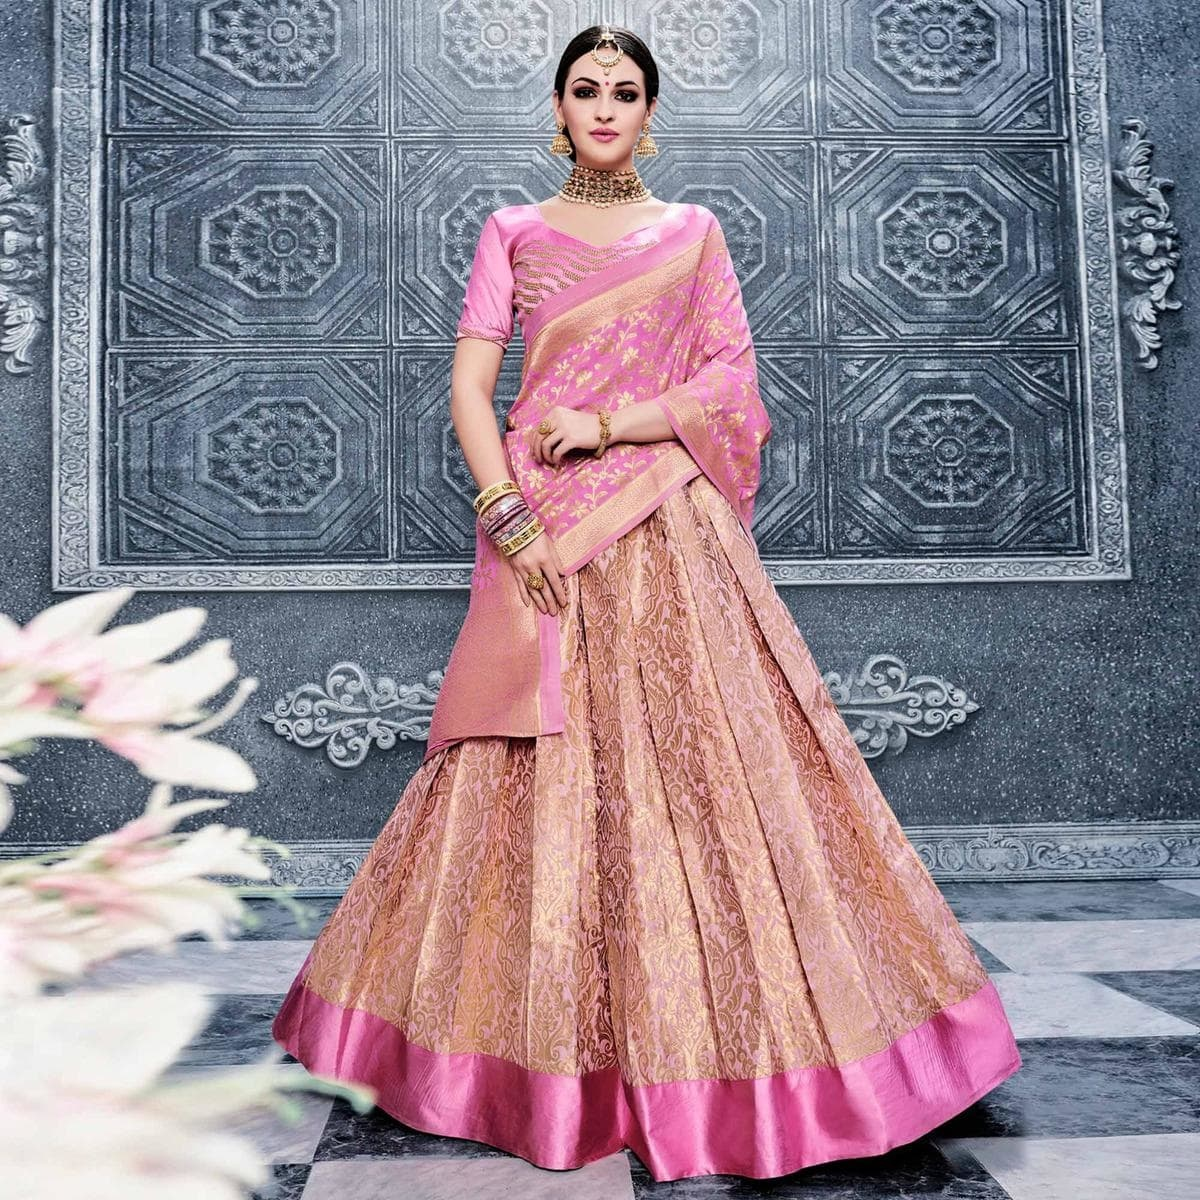 724c8aac63 One can also opt for crop tops along with Banarasi Lehenga in Delhi with quirky  accessories to give it a modern look.